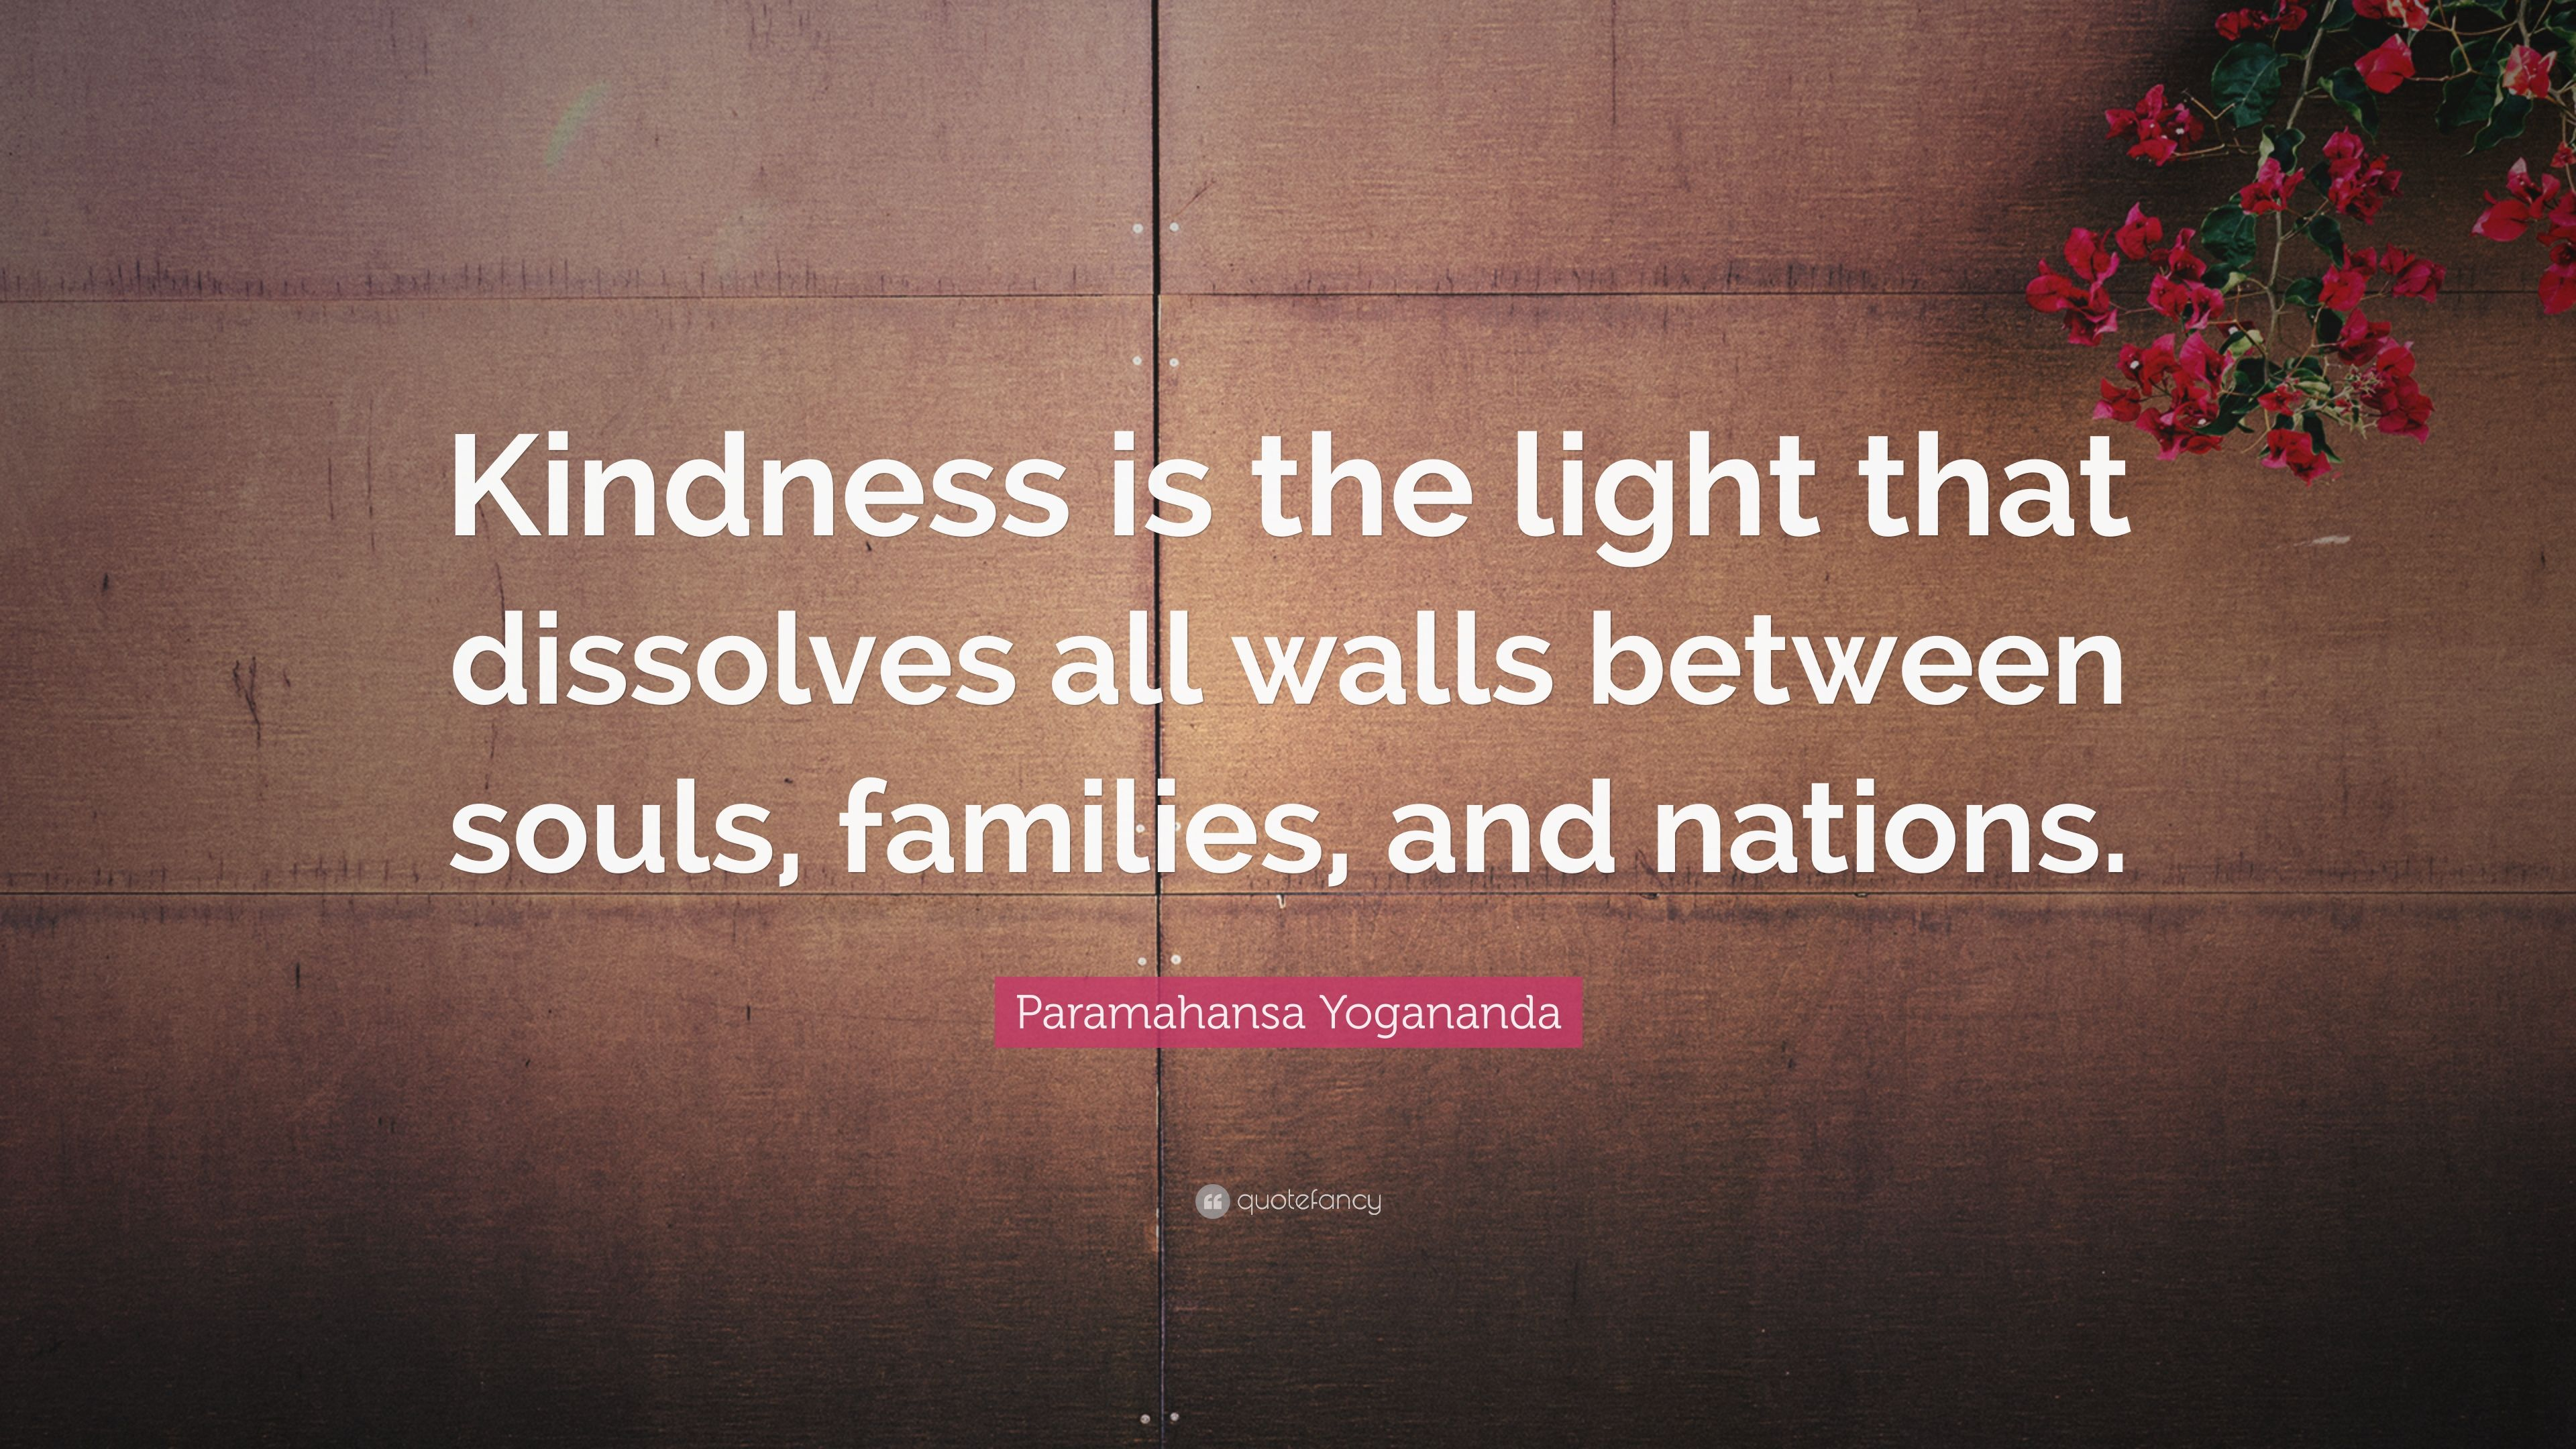 Quotes About Kindness Kindness Is The Light That Dissolves All Walls Between Souls